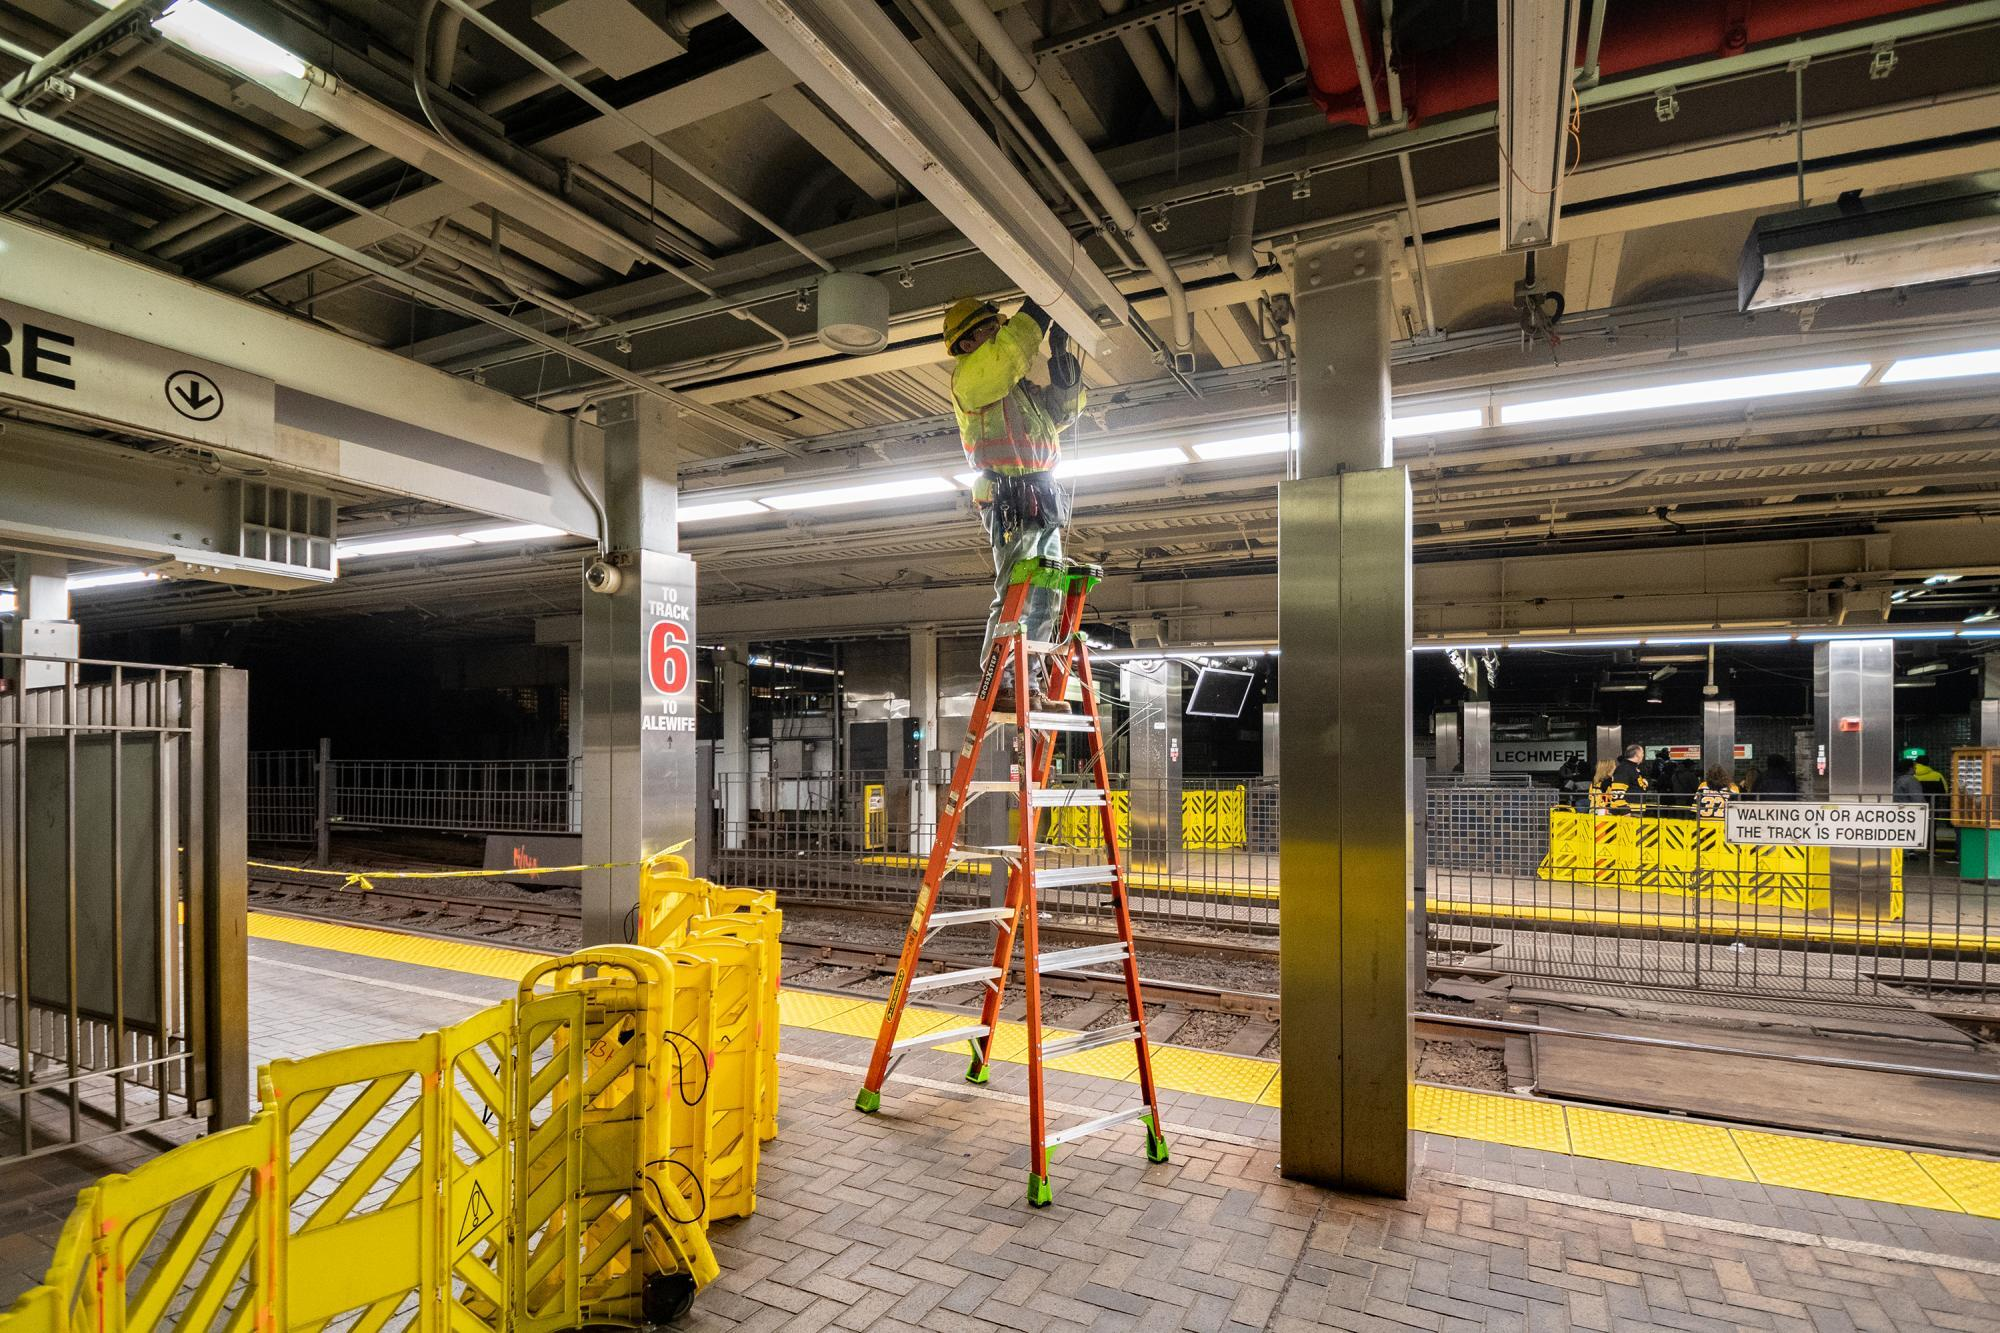 A crewman on a ladder installs new lights above the Green Line at Park Street